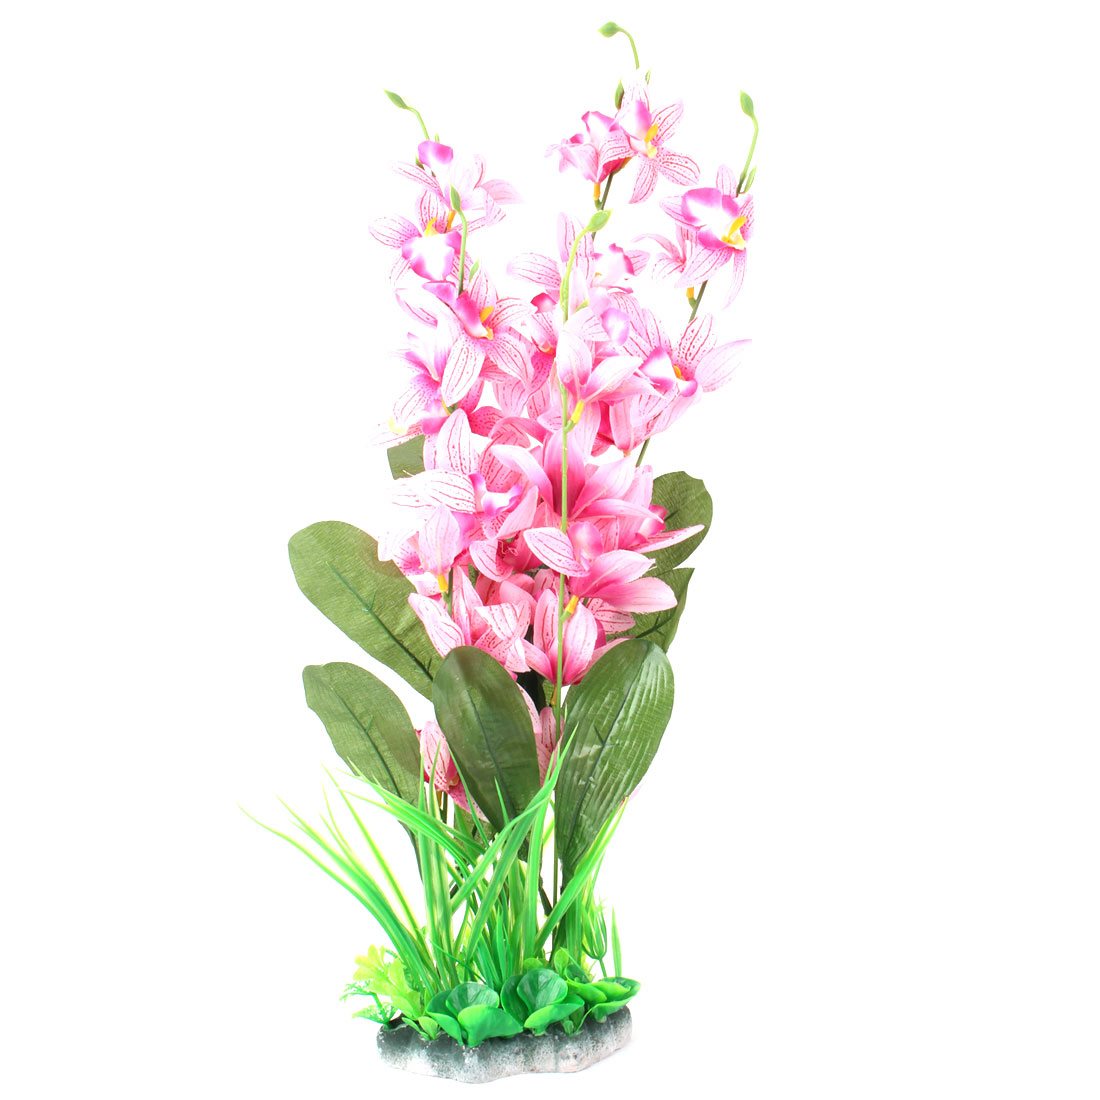 Aquarium Fish Tank Plastic Imitation Flower Plant Decor Colorful 48cm Height